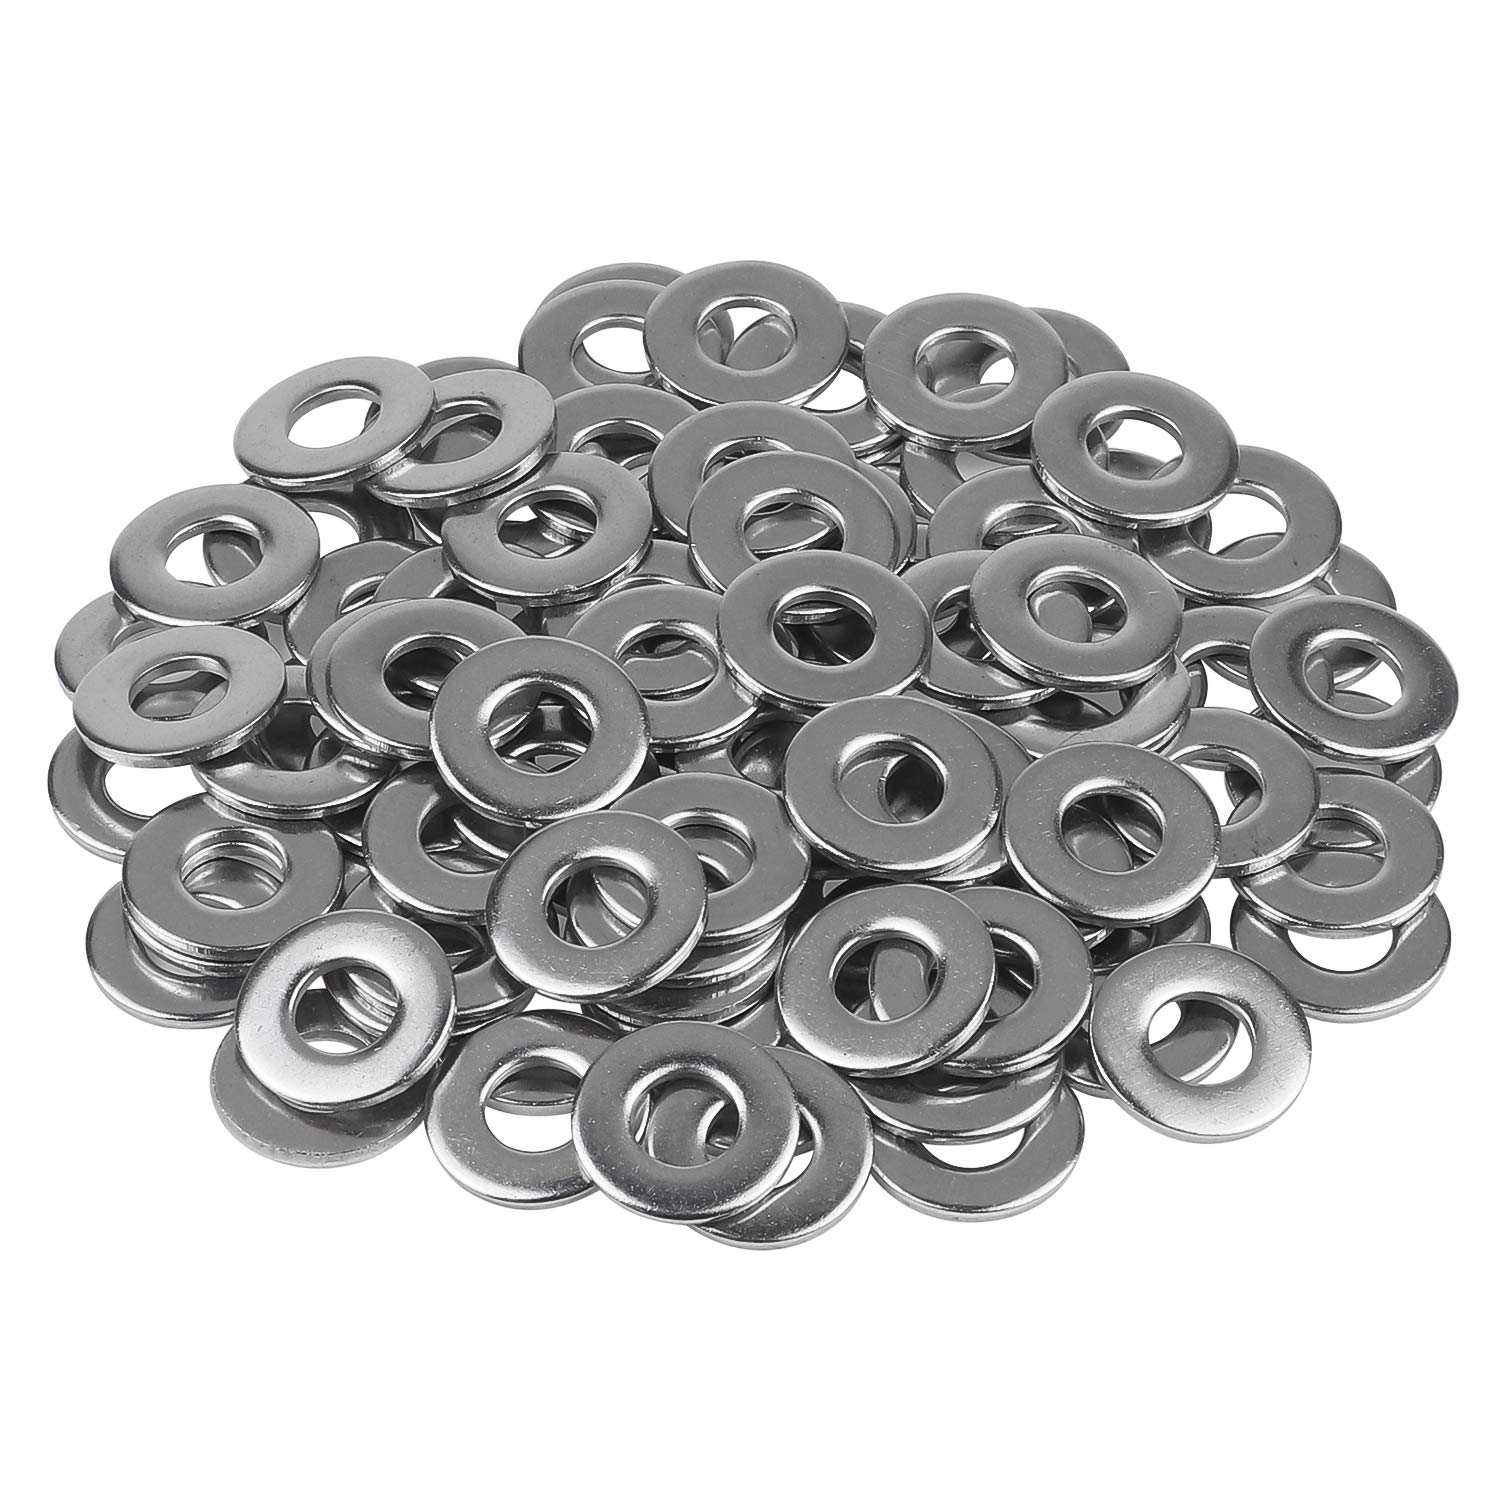 Favordrory 1/4 Inch Stainless Flat Washer, 5/8 Inch Outside Diameter, 304 Stainless Steel, 100 Pieces